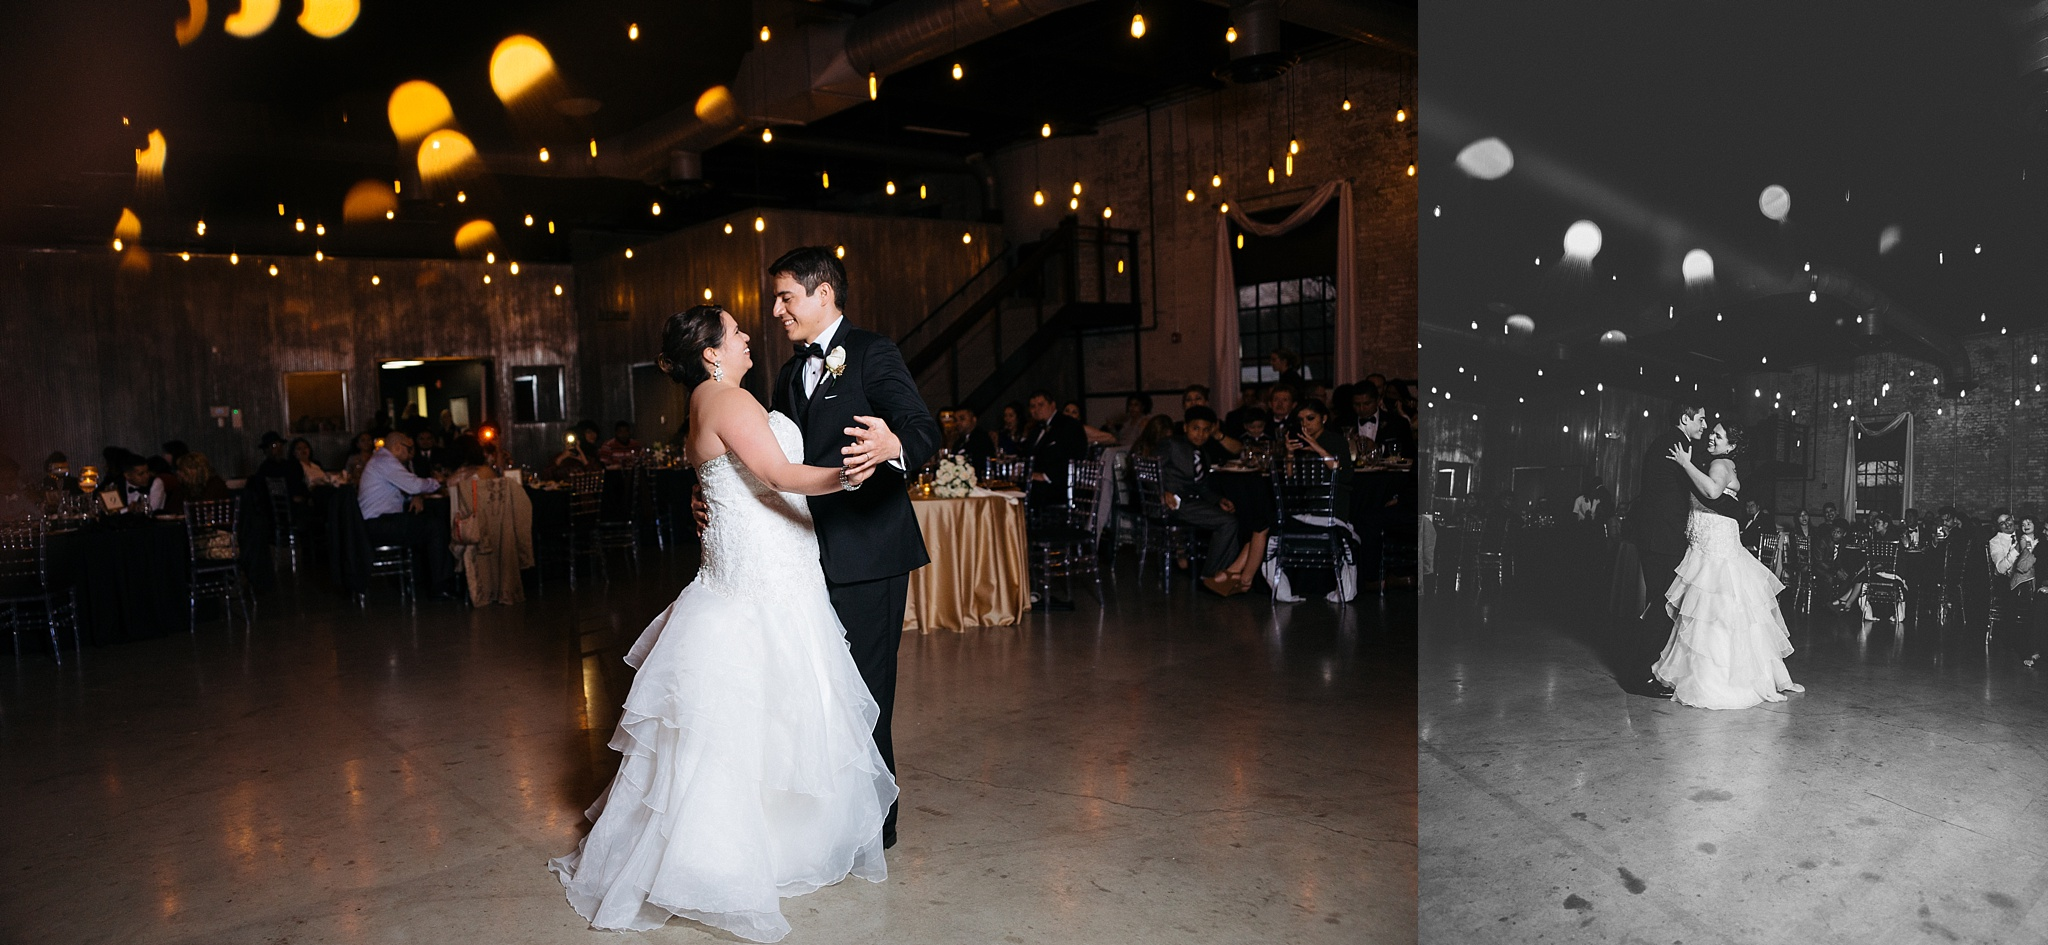 Shelby Chari Photography   South Bend Wedding Photographer   The Brick